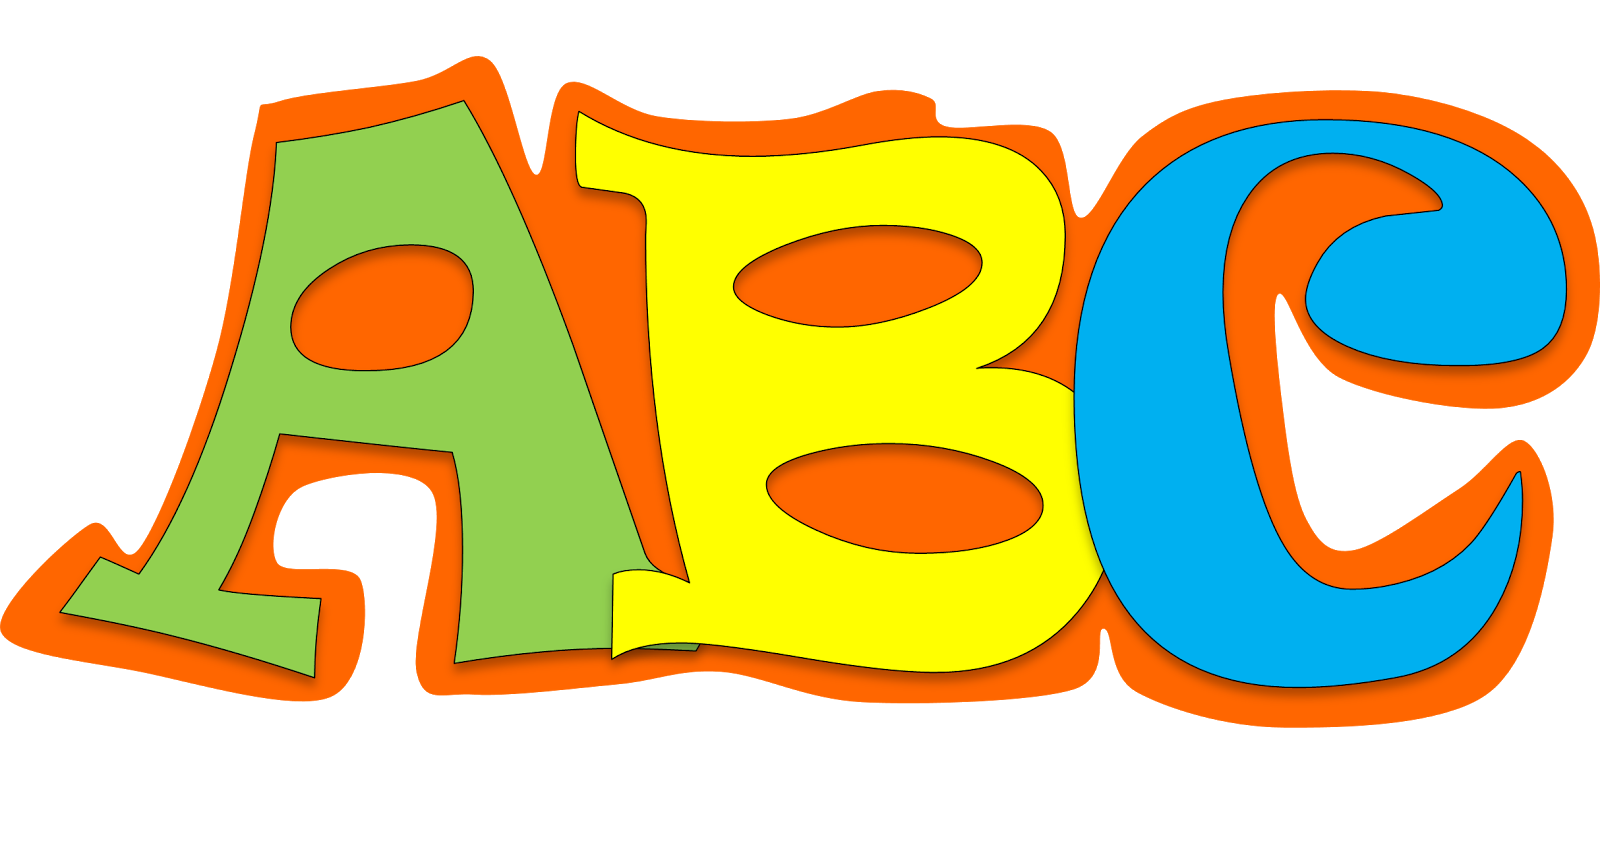 abc clipart free clipart creationz rh clipartcreationz blogspot com abc clipart letters abc clip art for kids